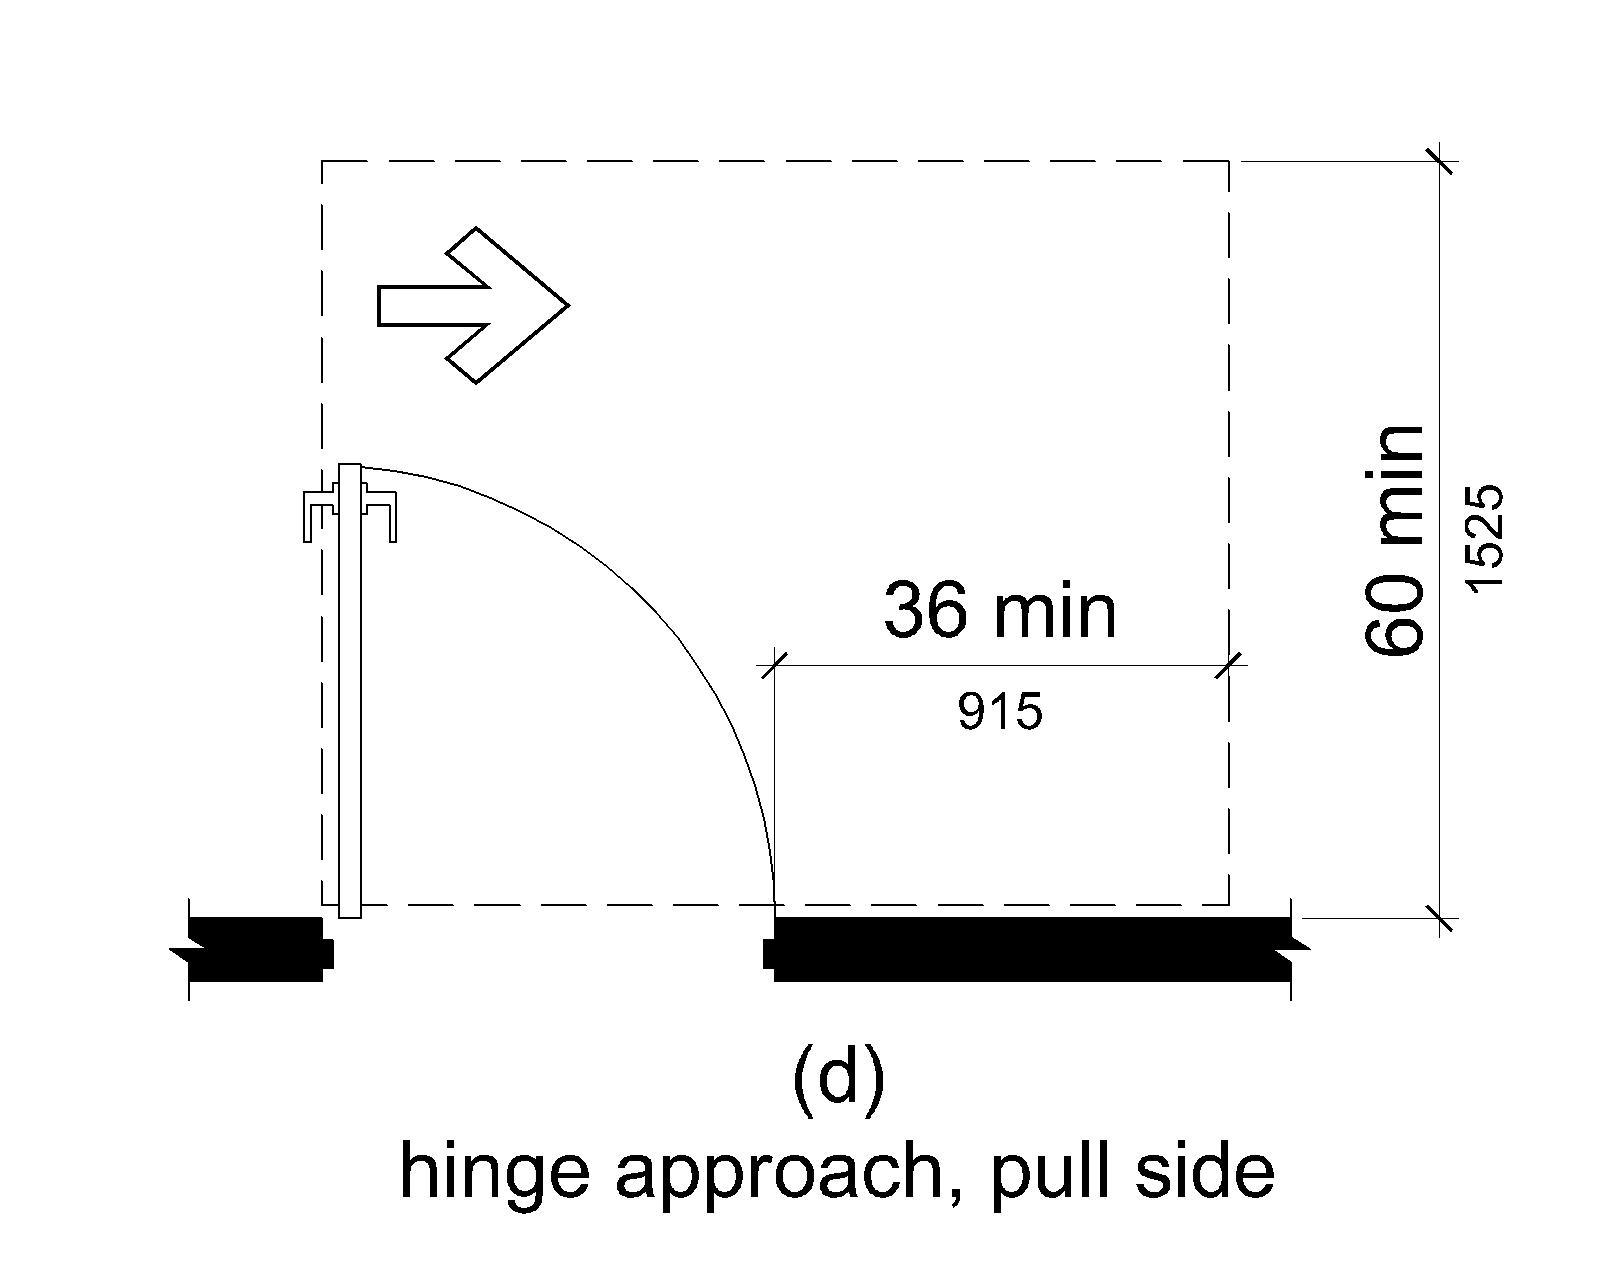 (d) Maneuvering space on the pull side extends 36 inches (915 mm) minimum beyond the latch side of the door and 60 inches (1525 mm) minimum perpendicular to the doorway.